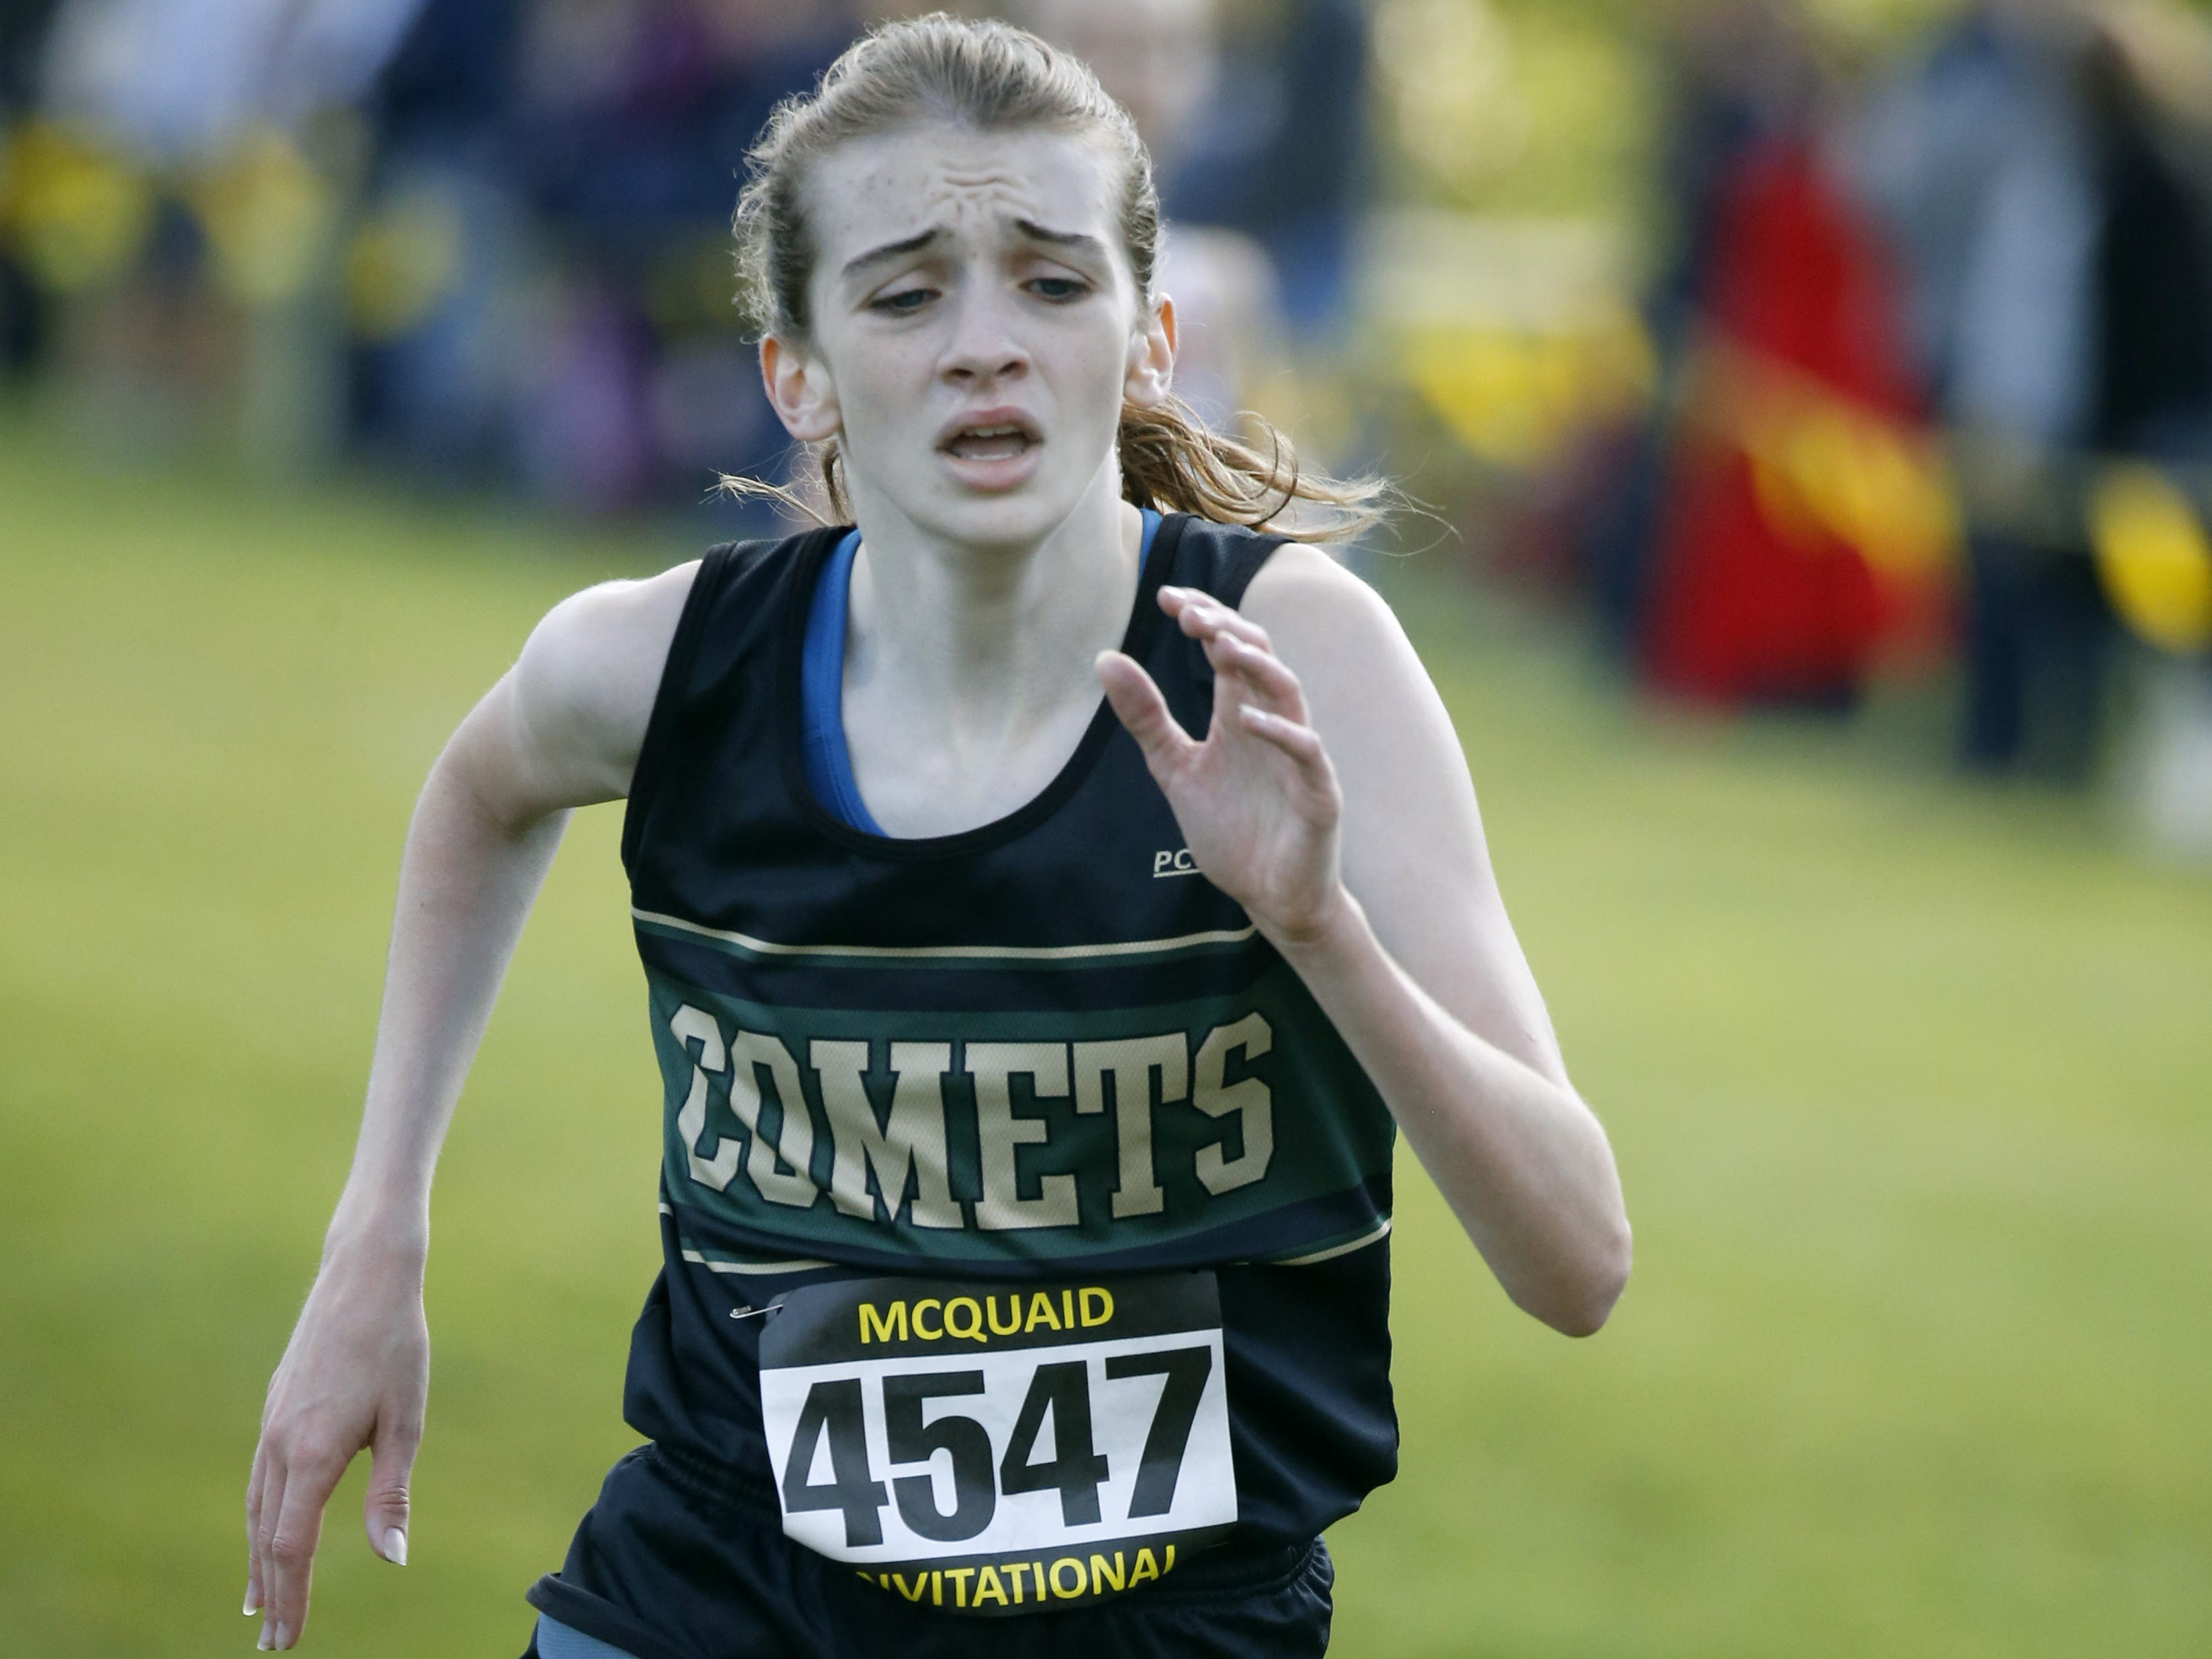 Rush-Henrietta's Haley Riorden finished 9th with a time of 17:56.5 in the 2017 Girls Seeded Varsity AAA (Large schools) during the 53rd McQuaid Invitational at Genesee Valley Park.